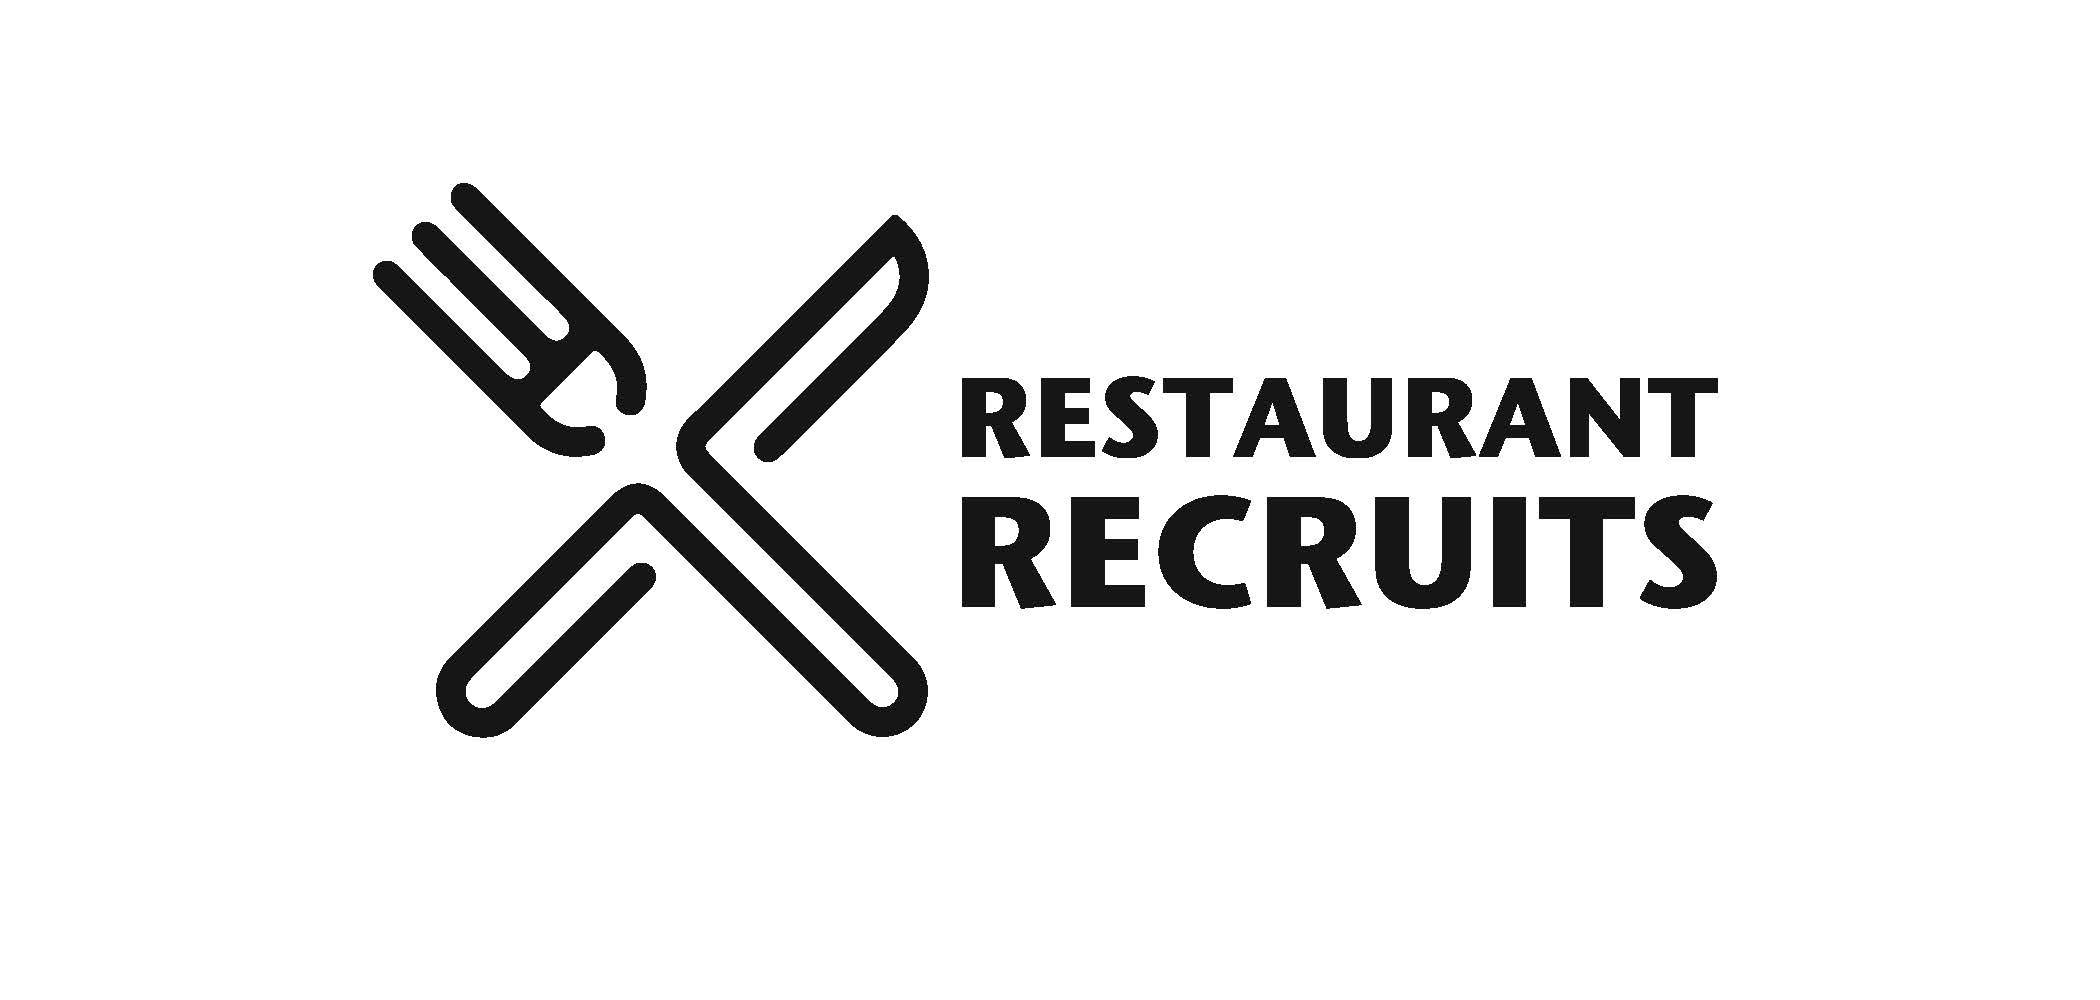 Restaurant Recruits Logo.jpg